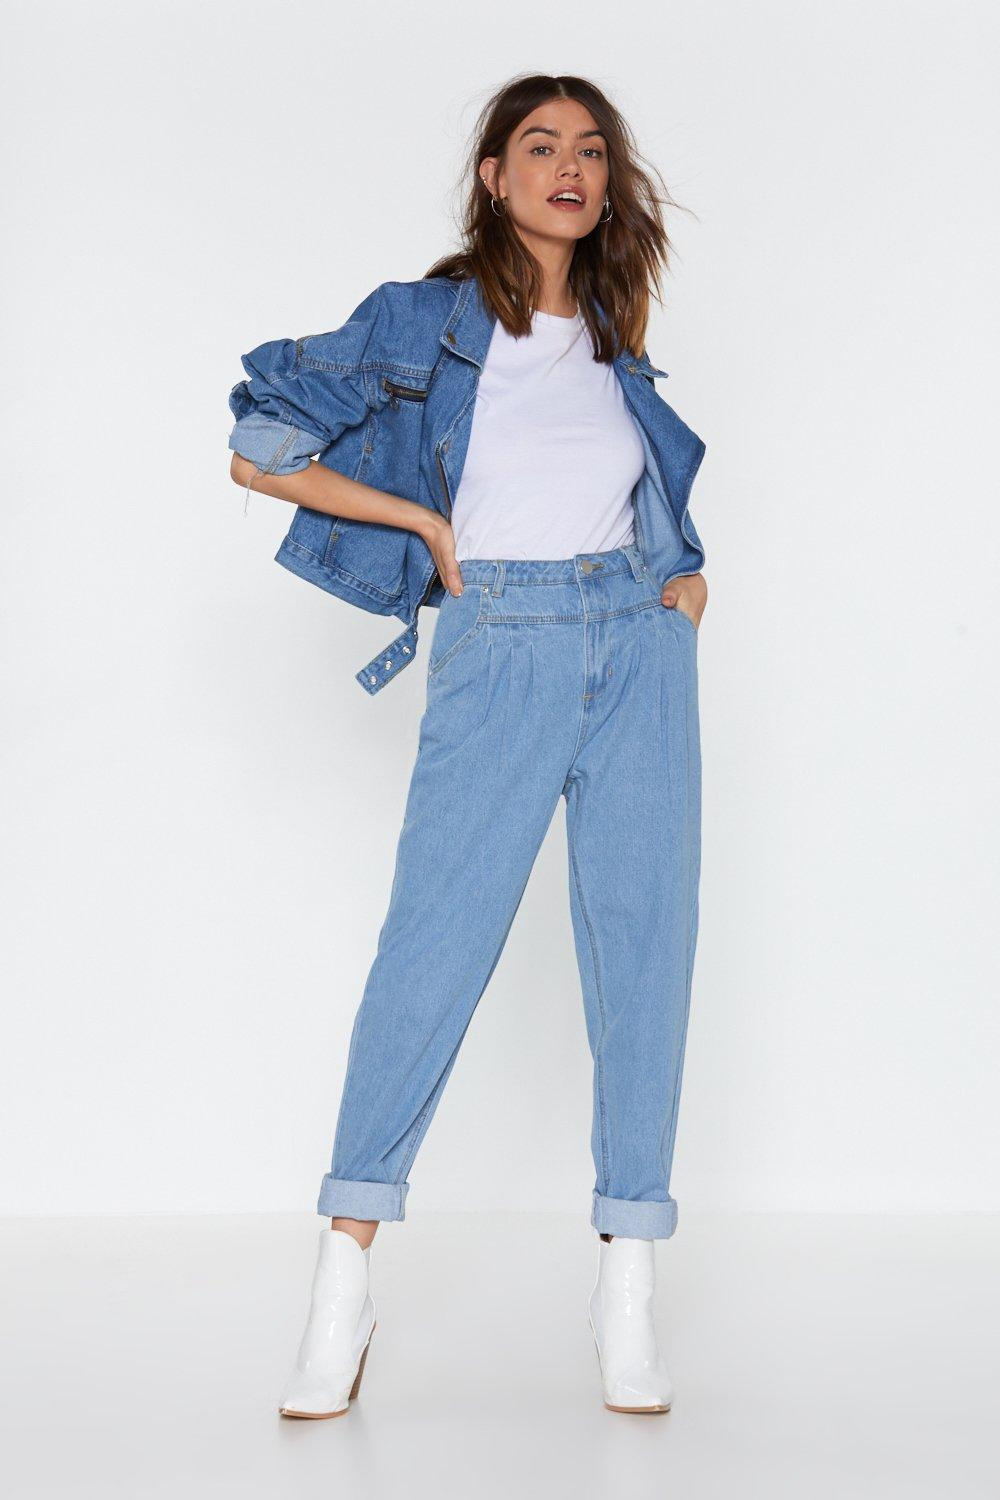 237e502a4 So Ripe High-Waisted Mom Jeans | Shop Clothes at Nasty Gal!